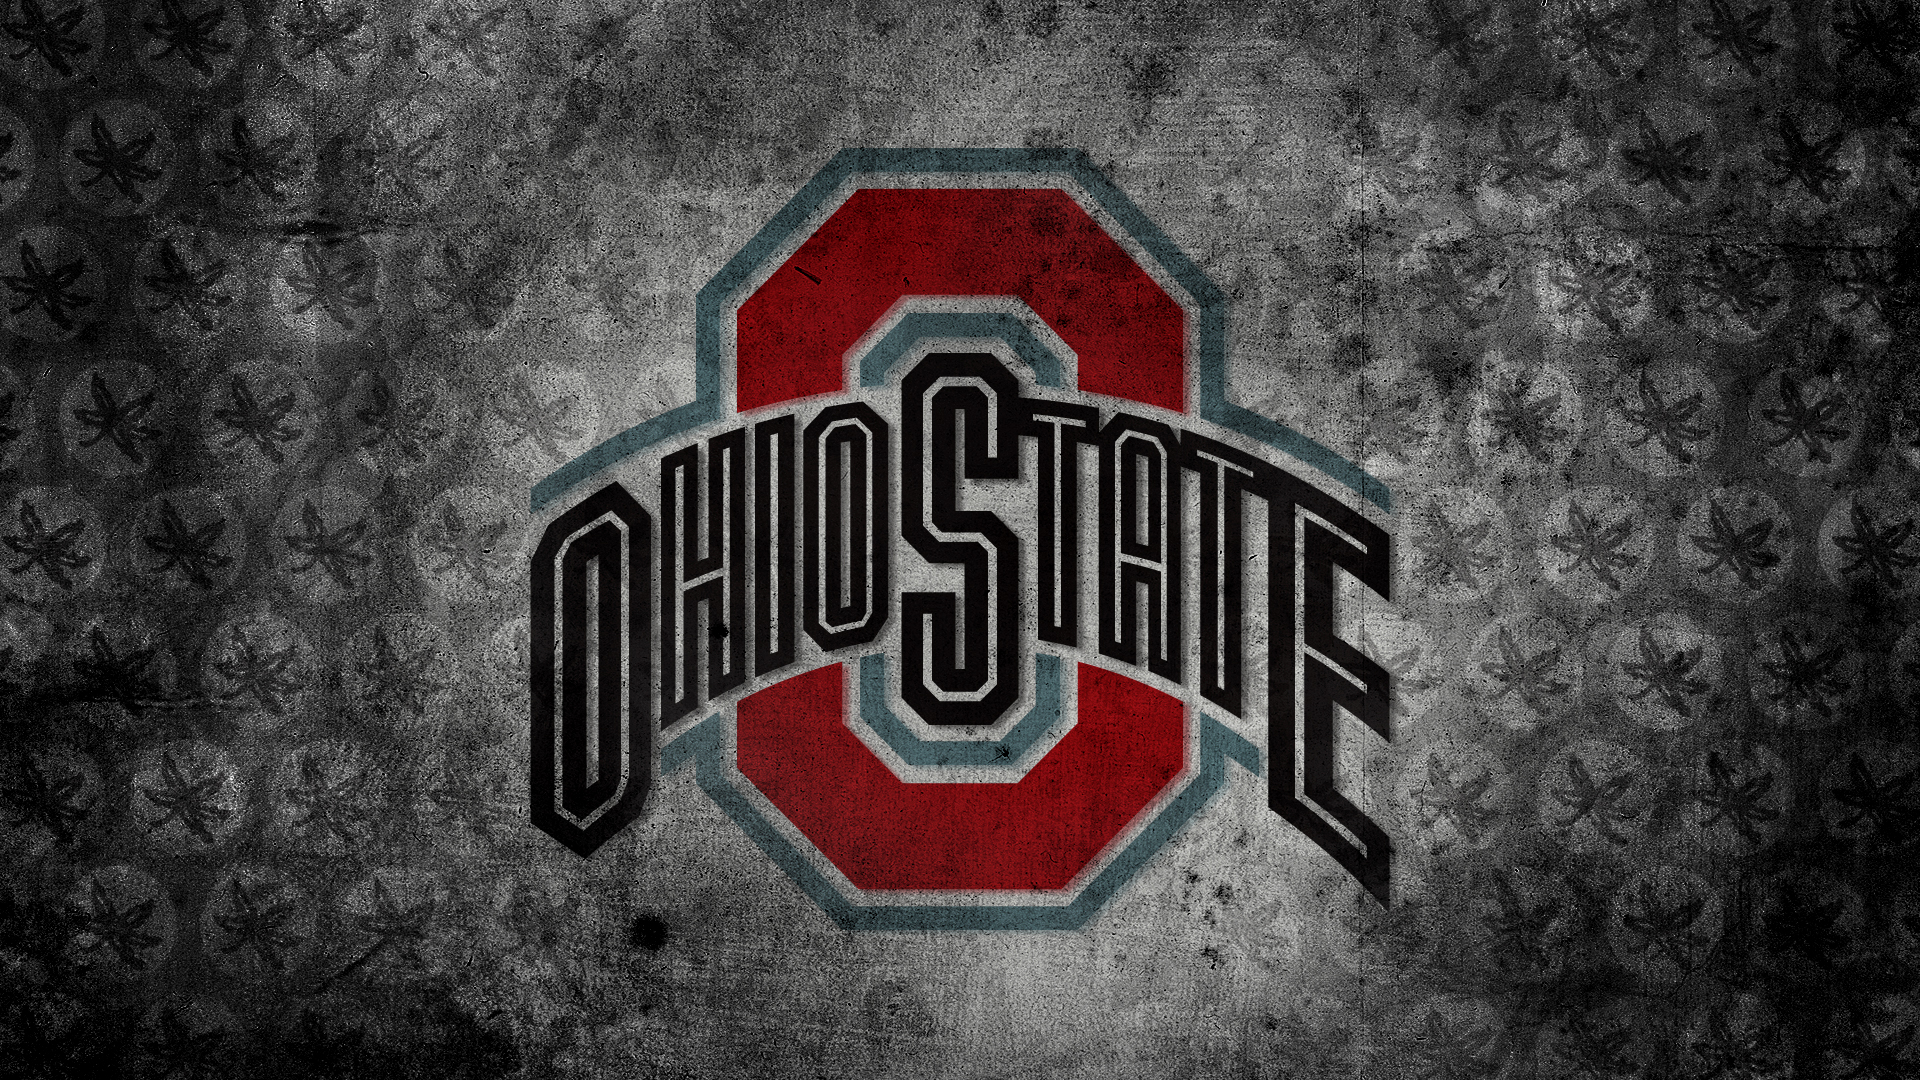 Ohio State Logo Wallpaper: 1080p By Salvationalizm On DeviantArt